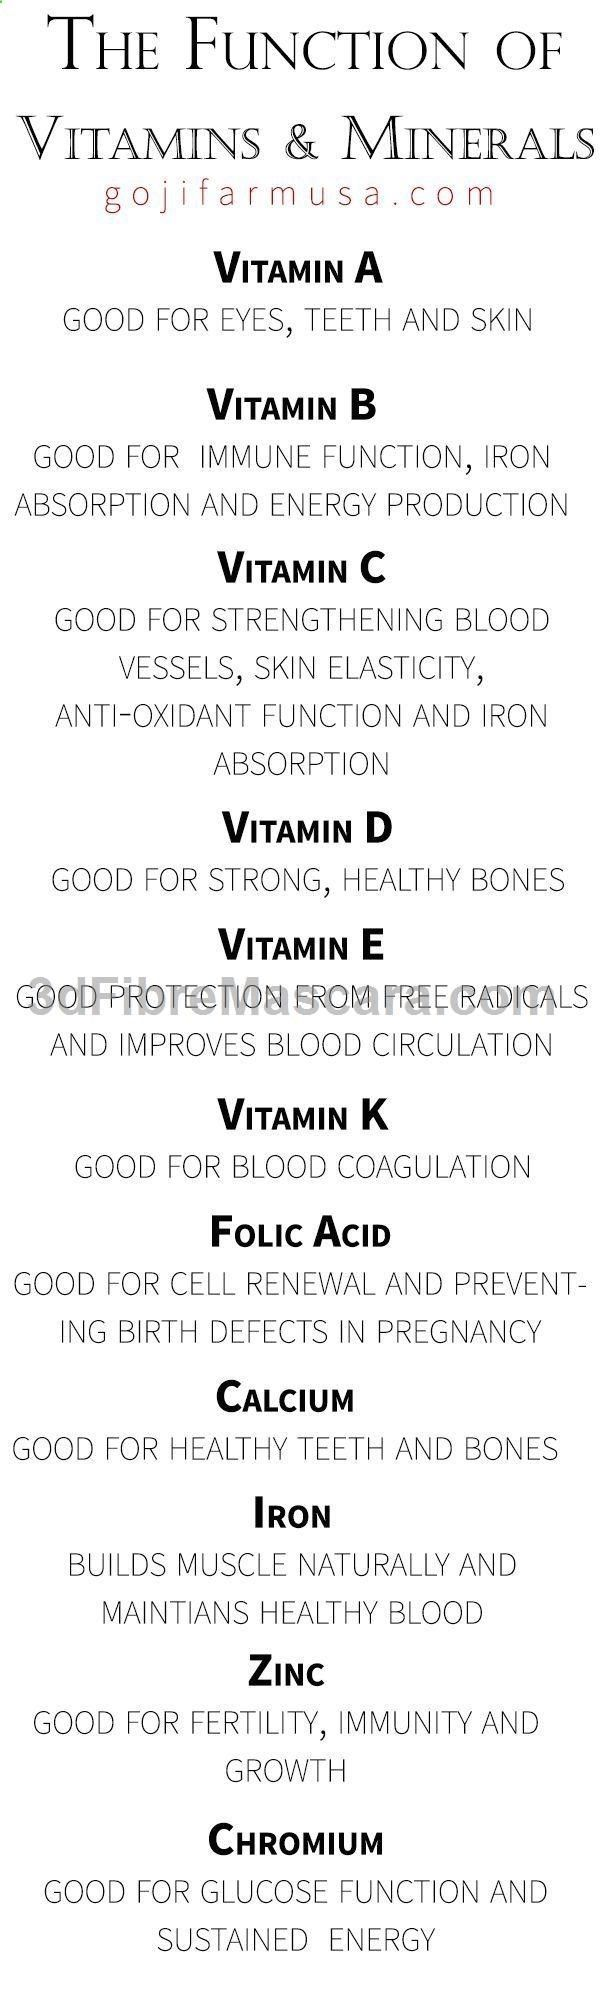 Learn what each of the vitamins means and what benefits they bring to your body. #vitamins #healthylife #health